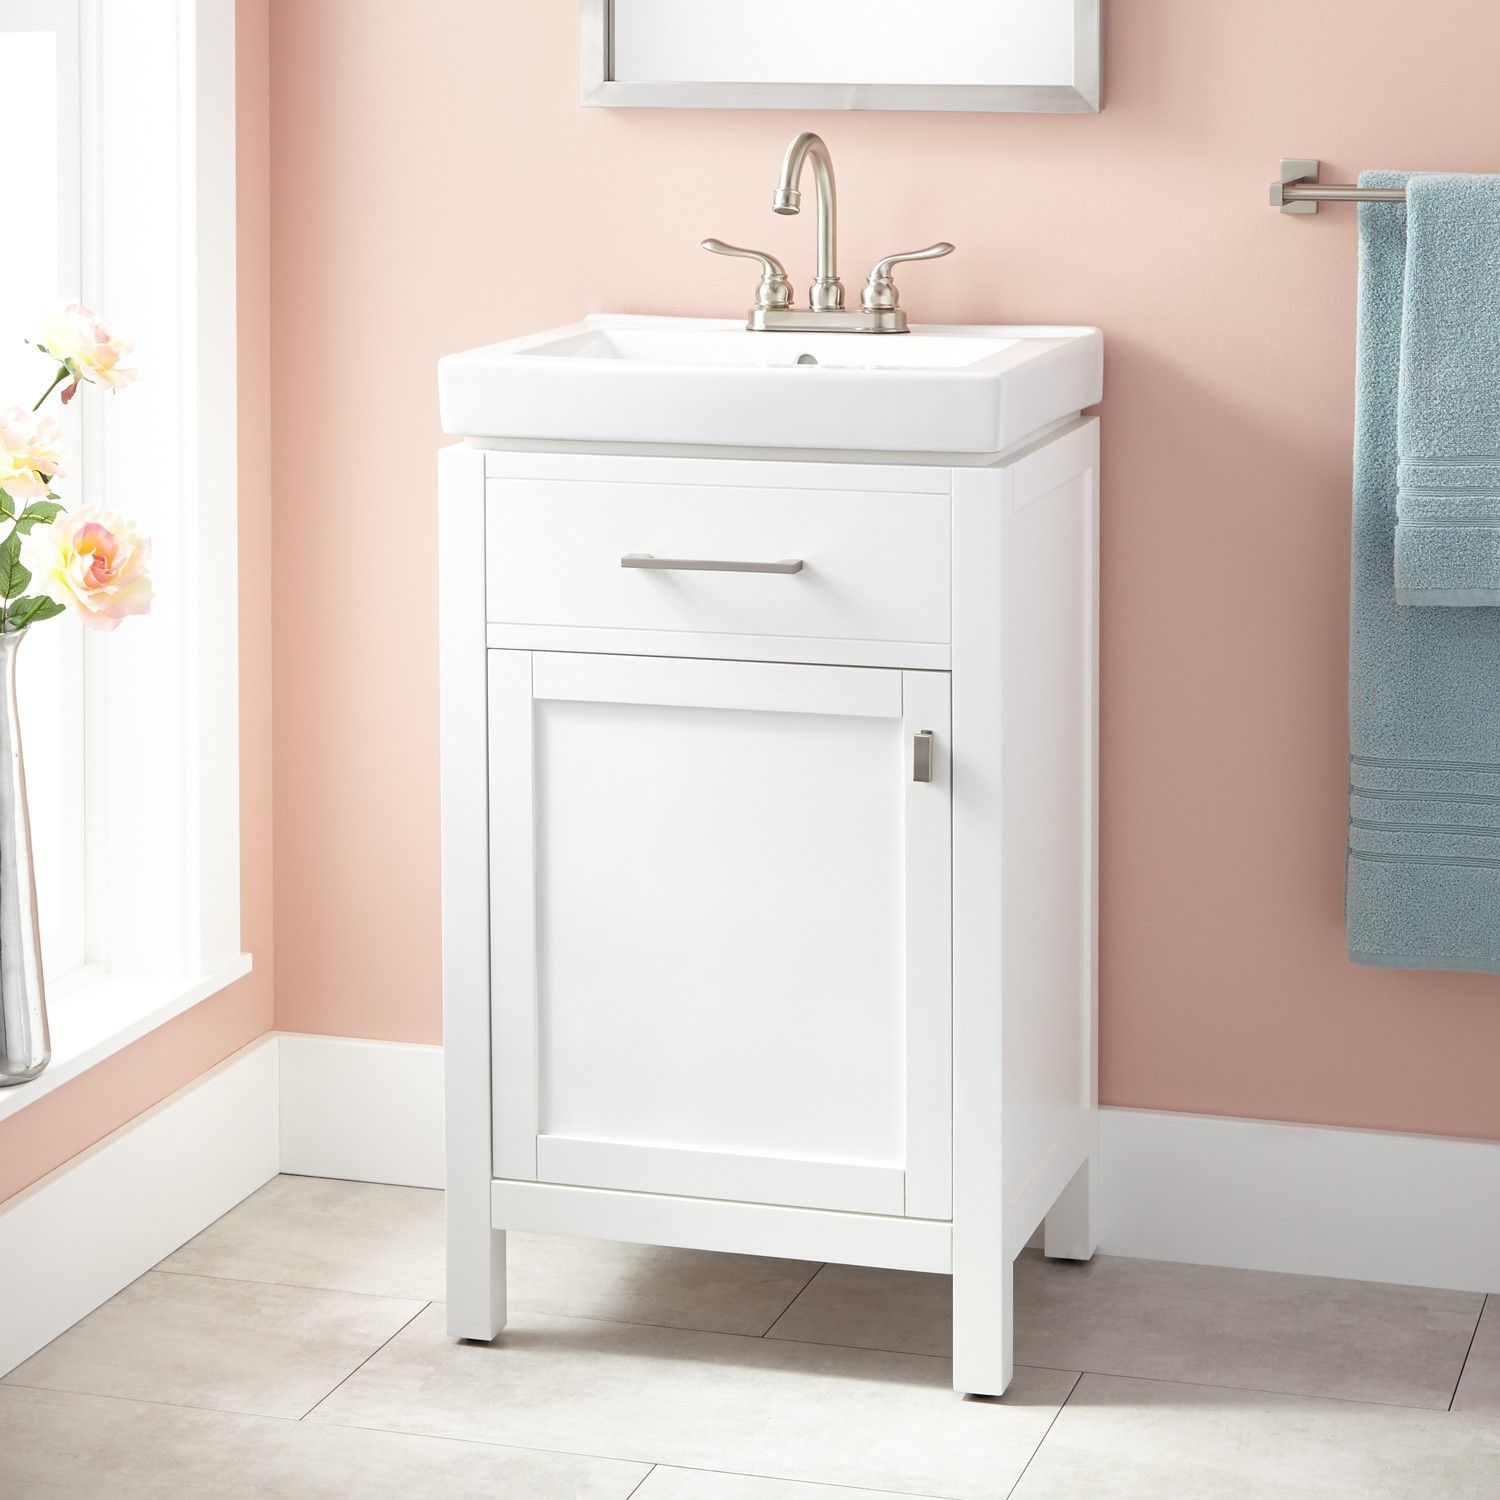 20 Foster Vanity White Bathroom Vanities Bathroom White